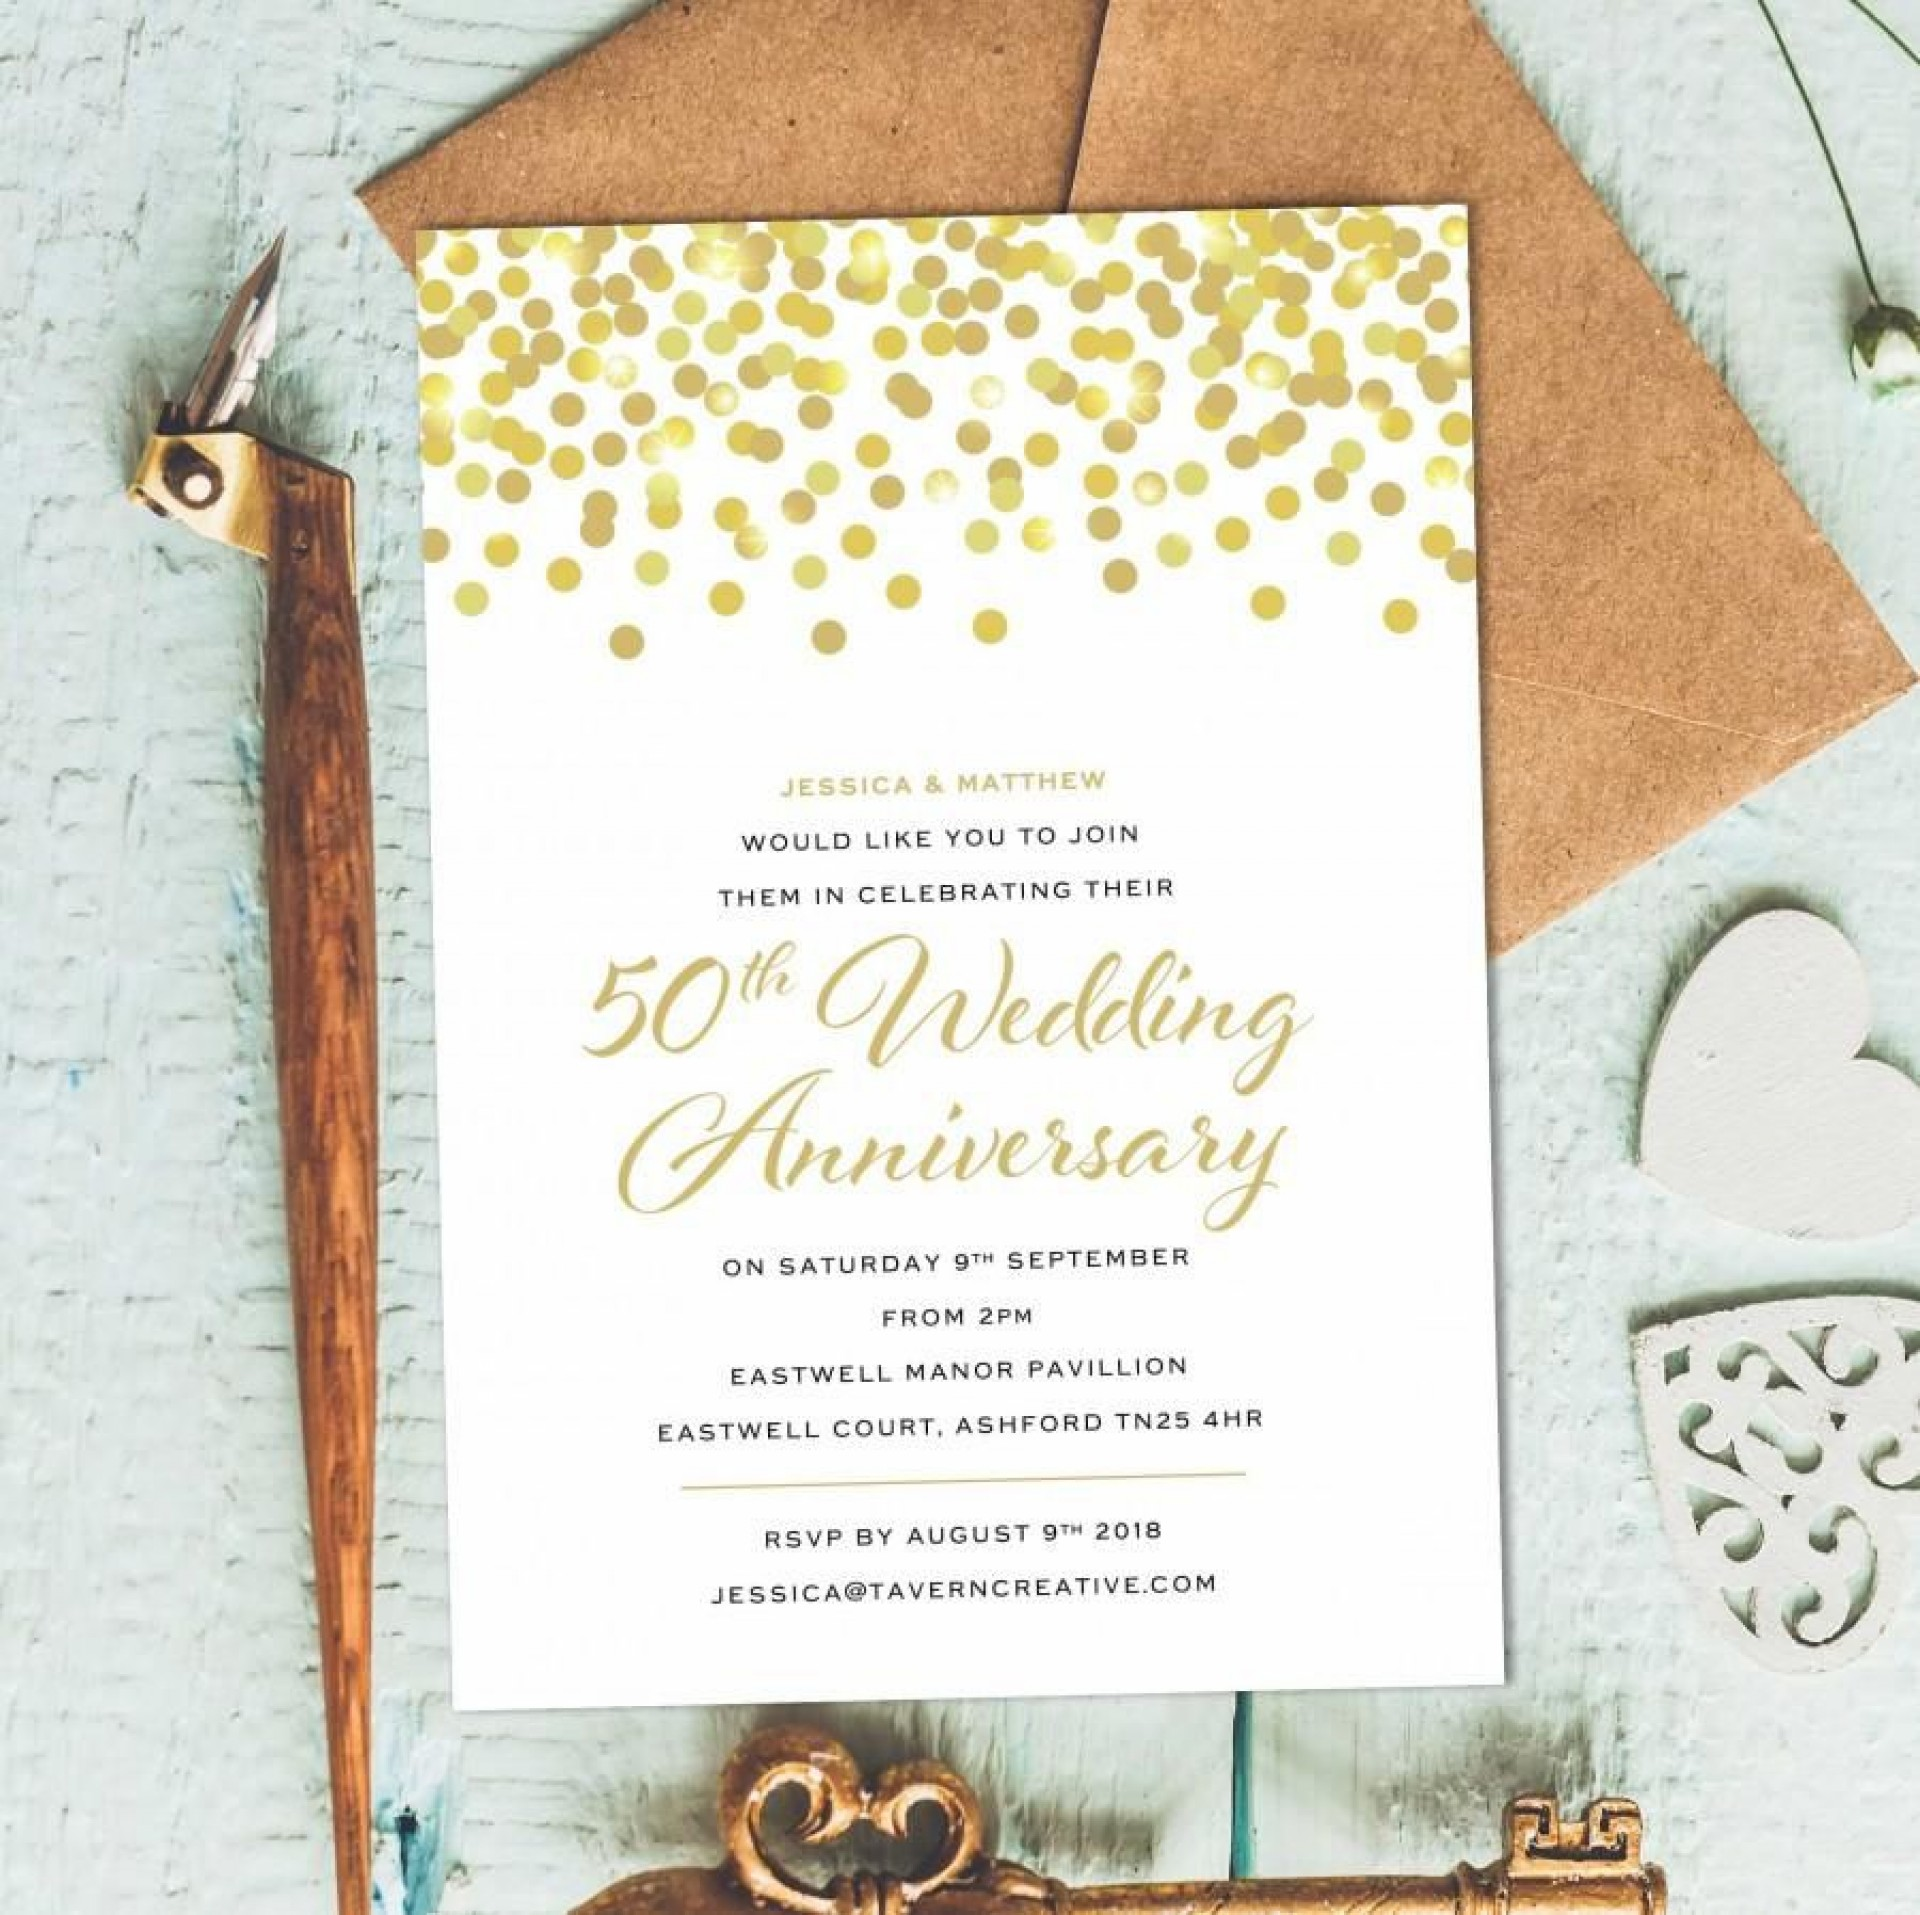 002 Remarkable 50th Wedding Anniversary Party Invitation Template Highest Clarity  Templates Free1920